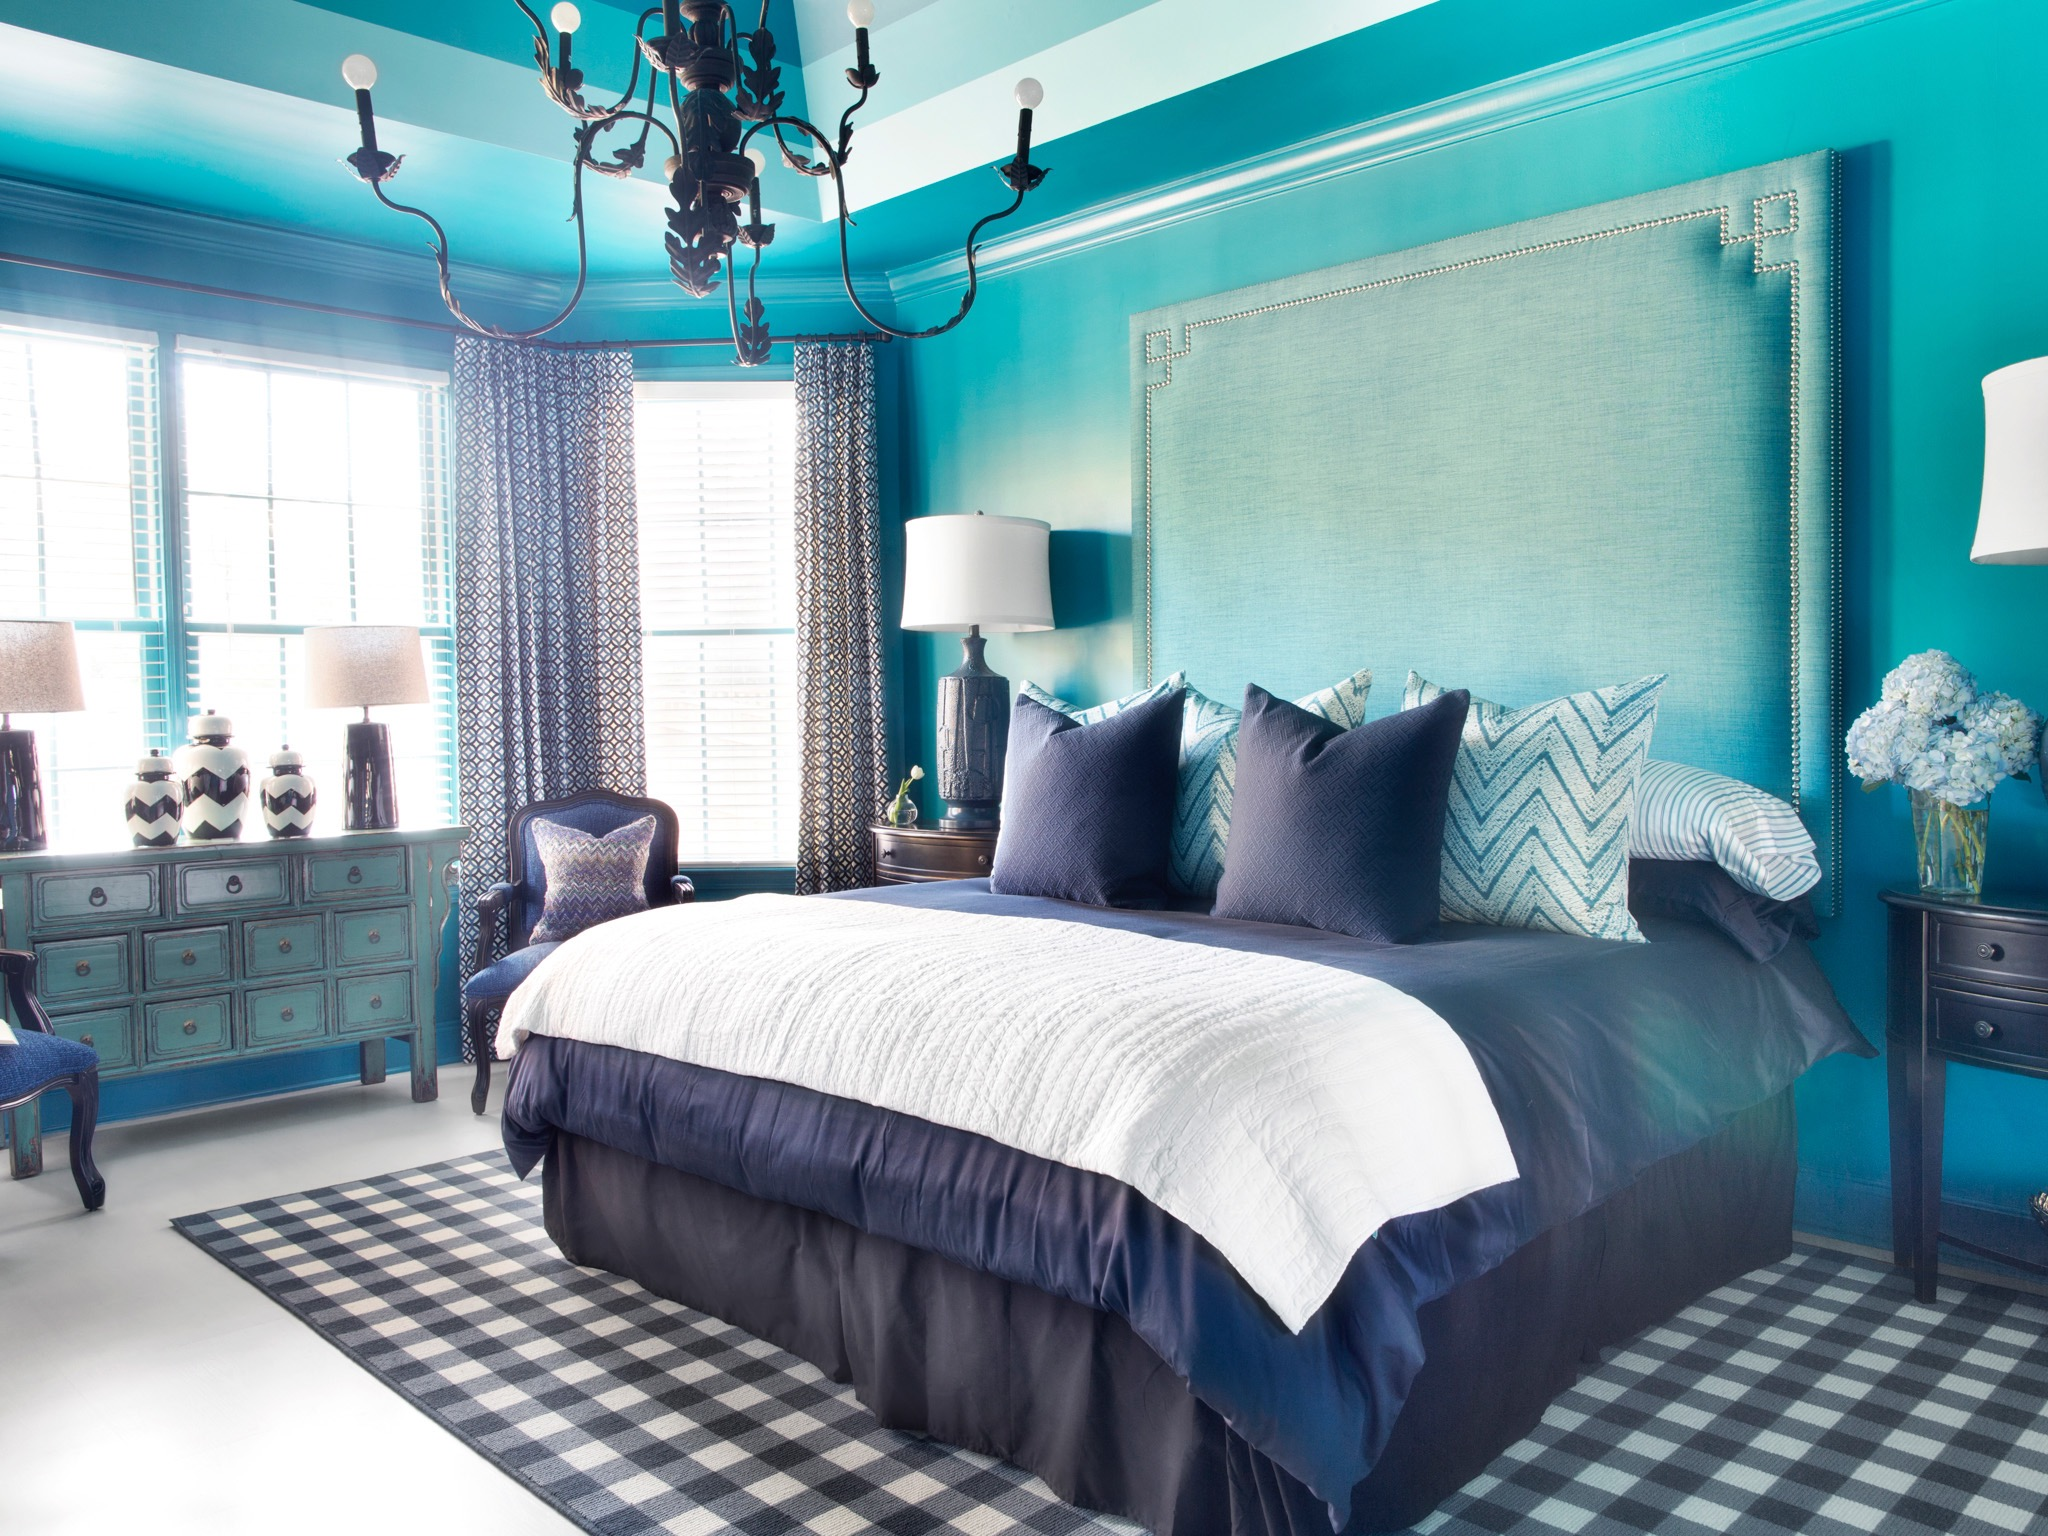 Stylish Master Bedroom Decor In Blue Color Theme (Image 27 of 28)